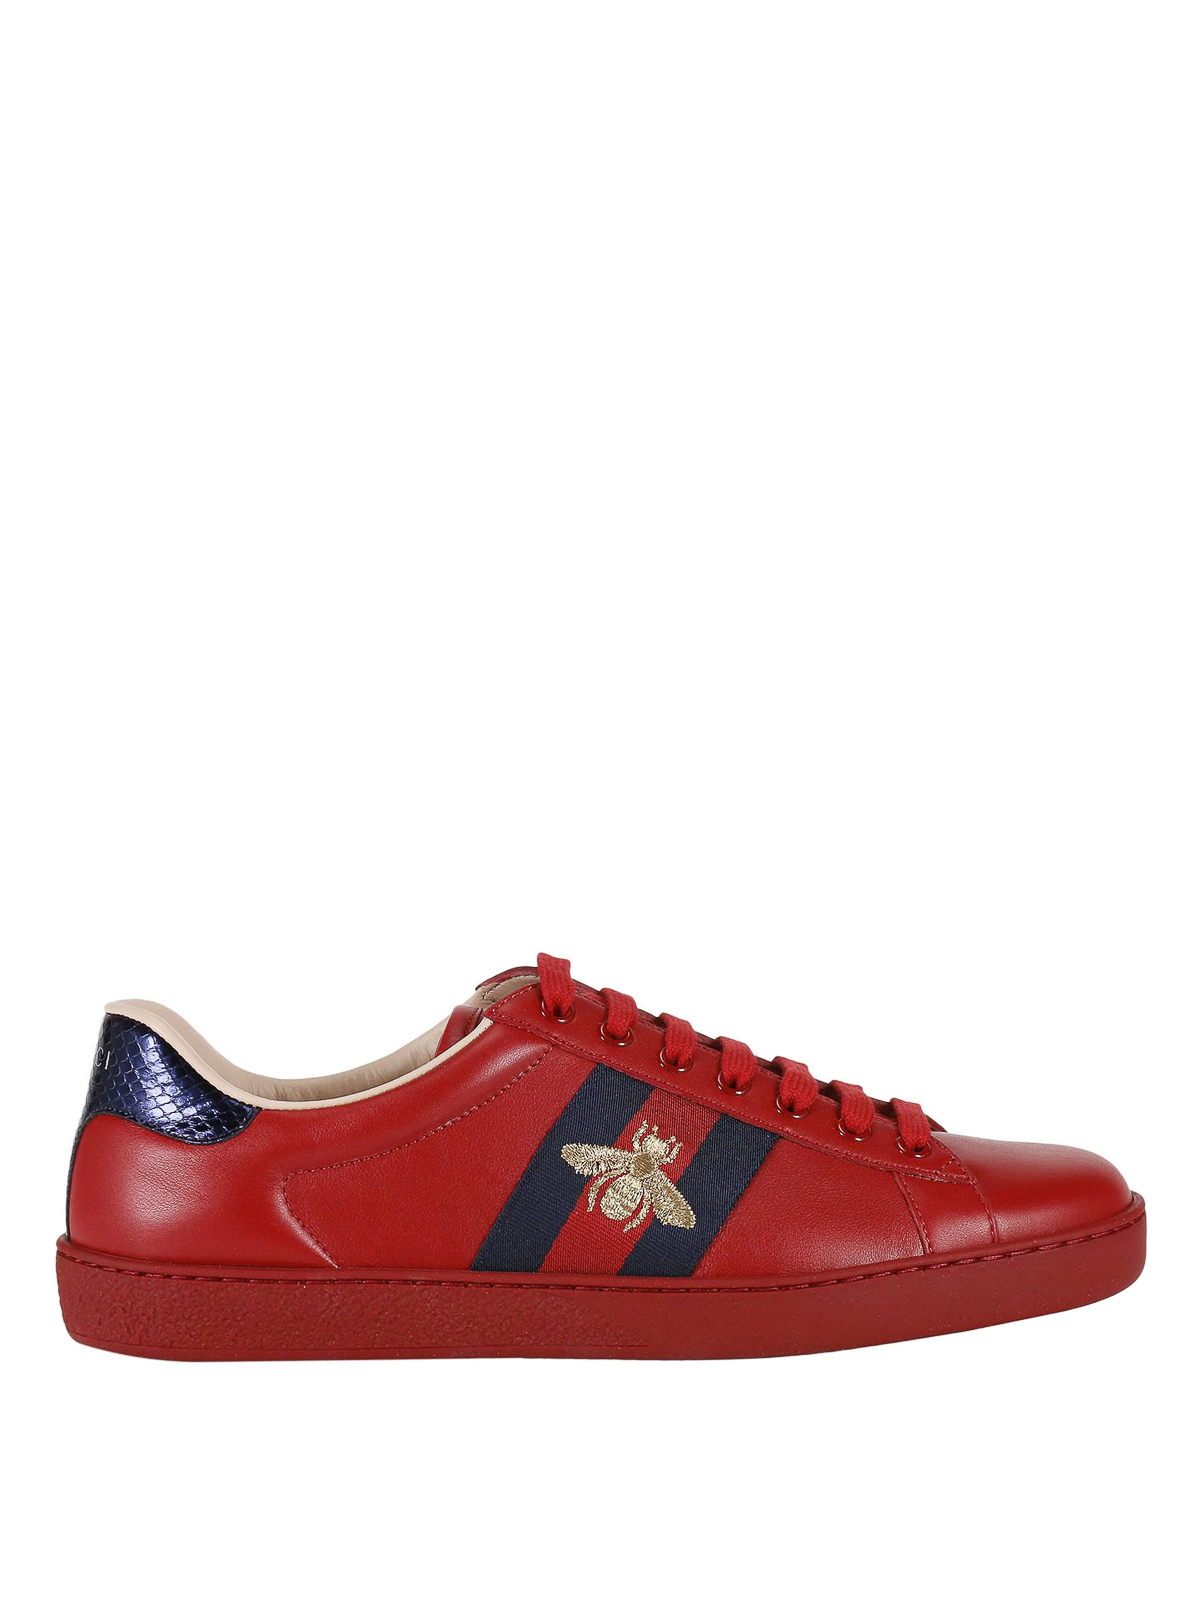 Gucci Ace Web Detail Leather Sneakers Trainers